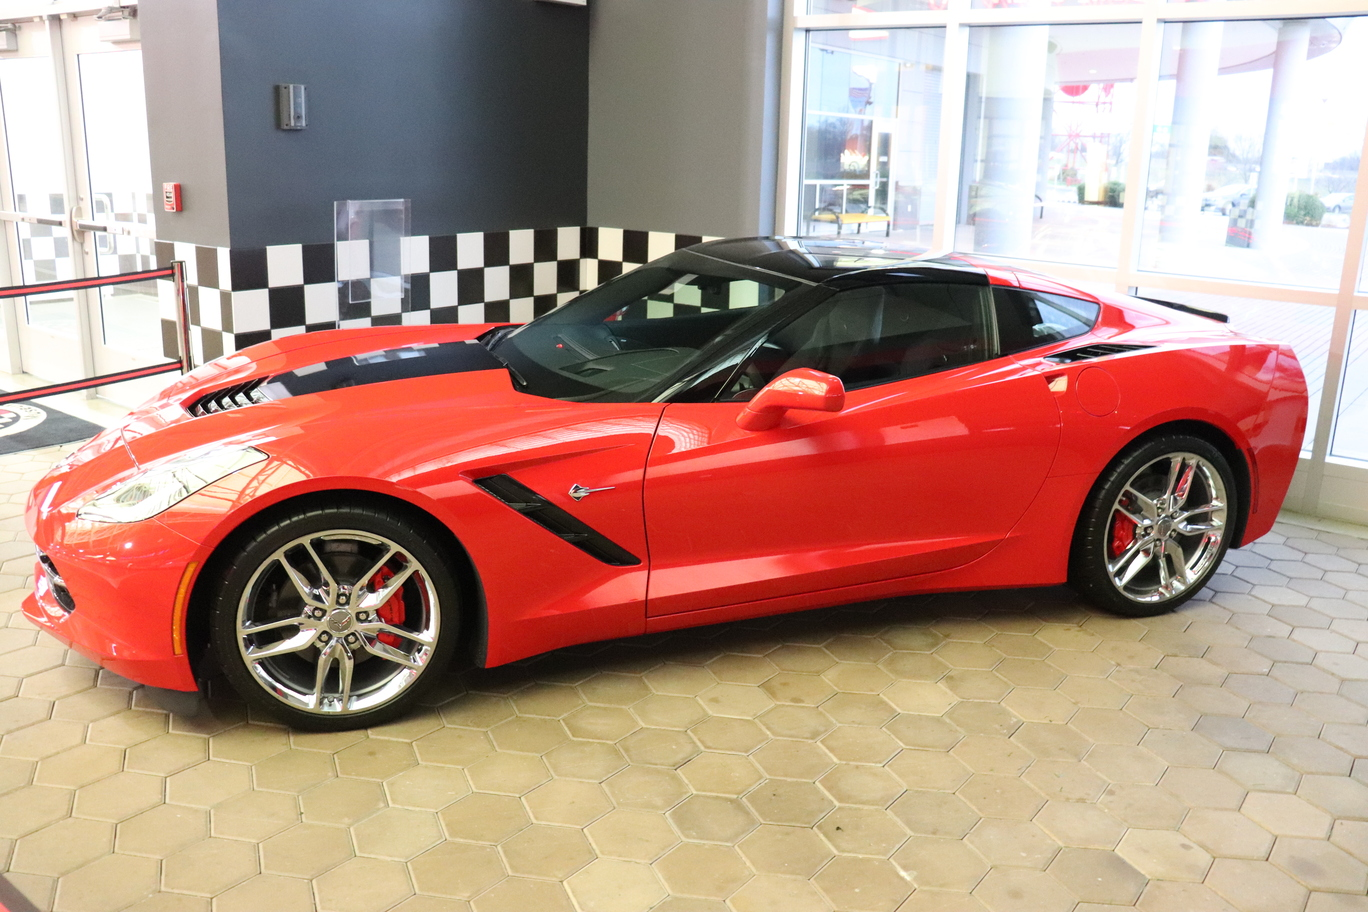 C7 Corvette on display at the National Corvette Museum